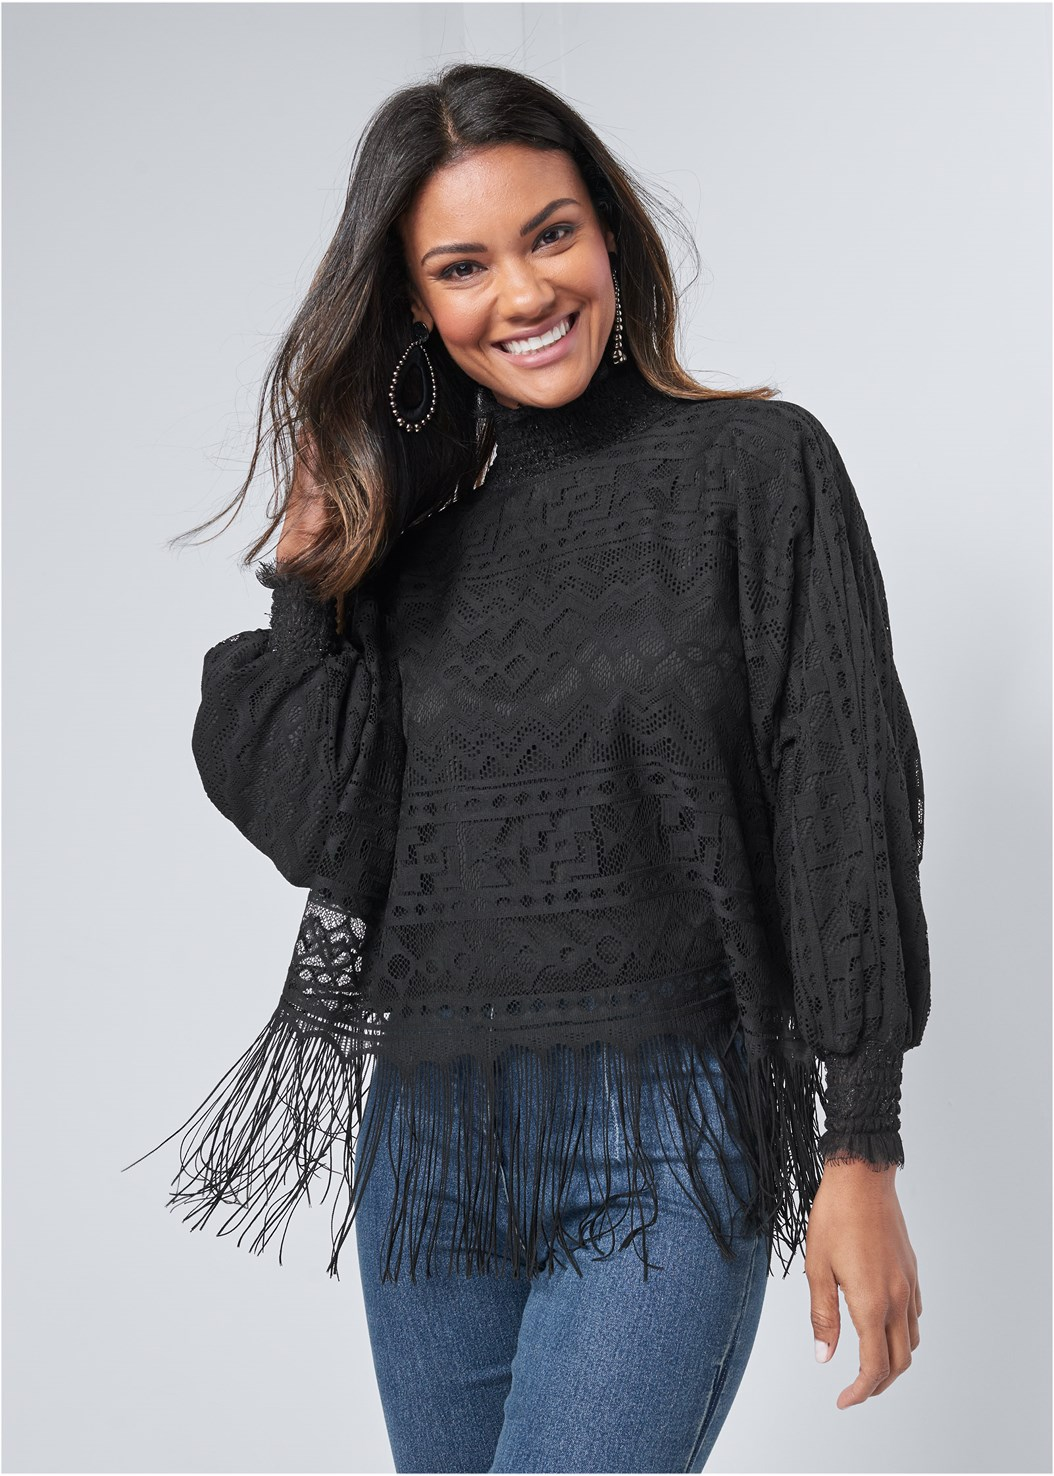 Fringe Detail Lace Top,Kissable Strappy Push Up,Wrap Around Heels